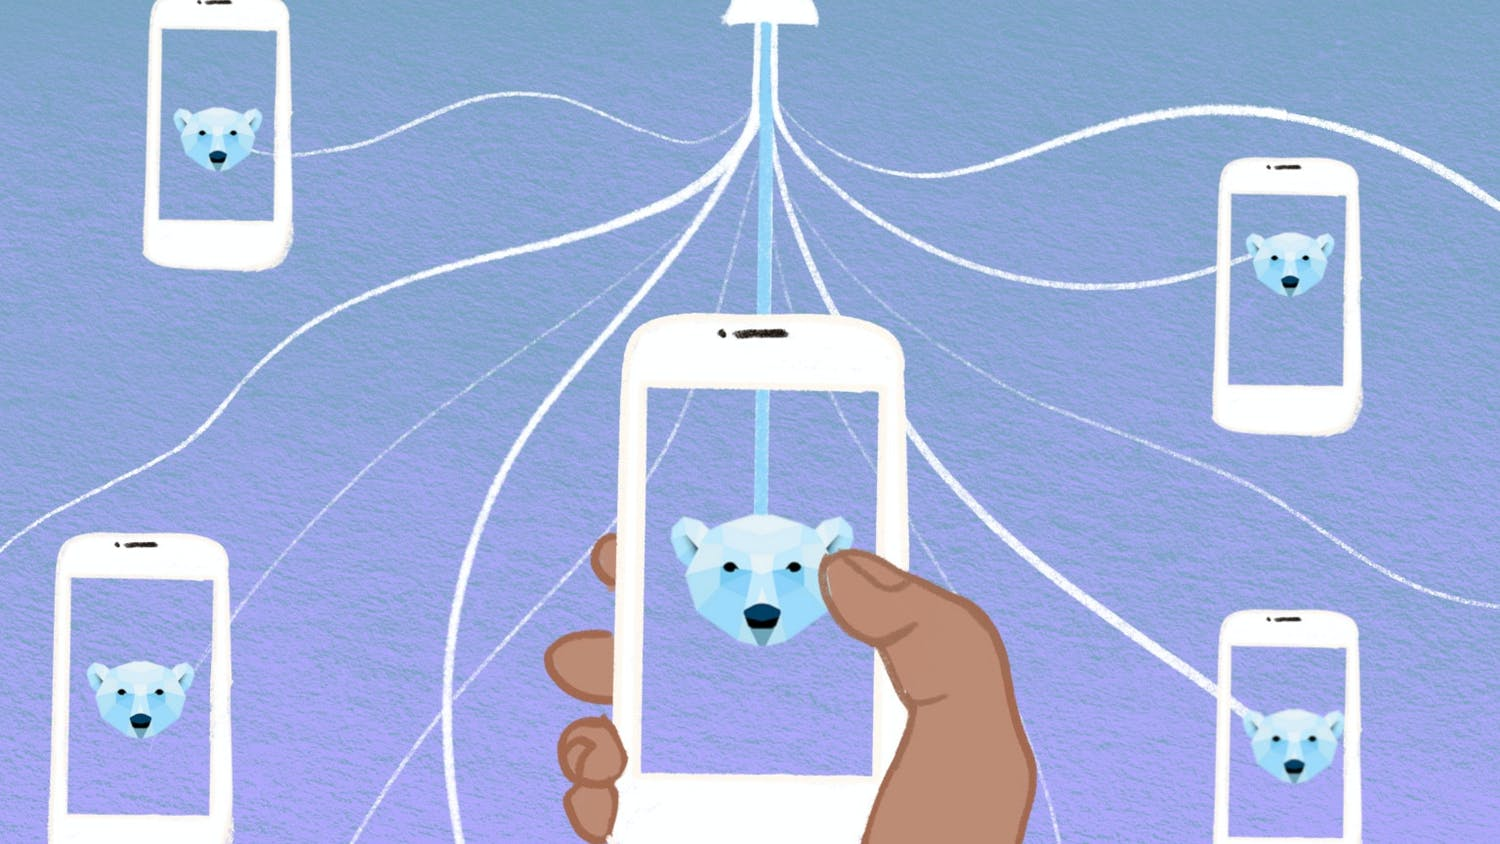 """The polar baer app is """"the only app where you meet 100% of your matches,"""" according to co-founder Charles Heitmuller. [graphic by Aubrey Bocalan]"""